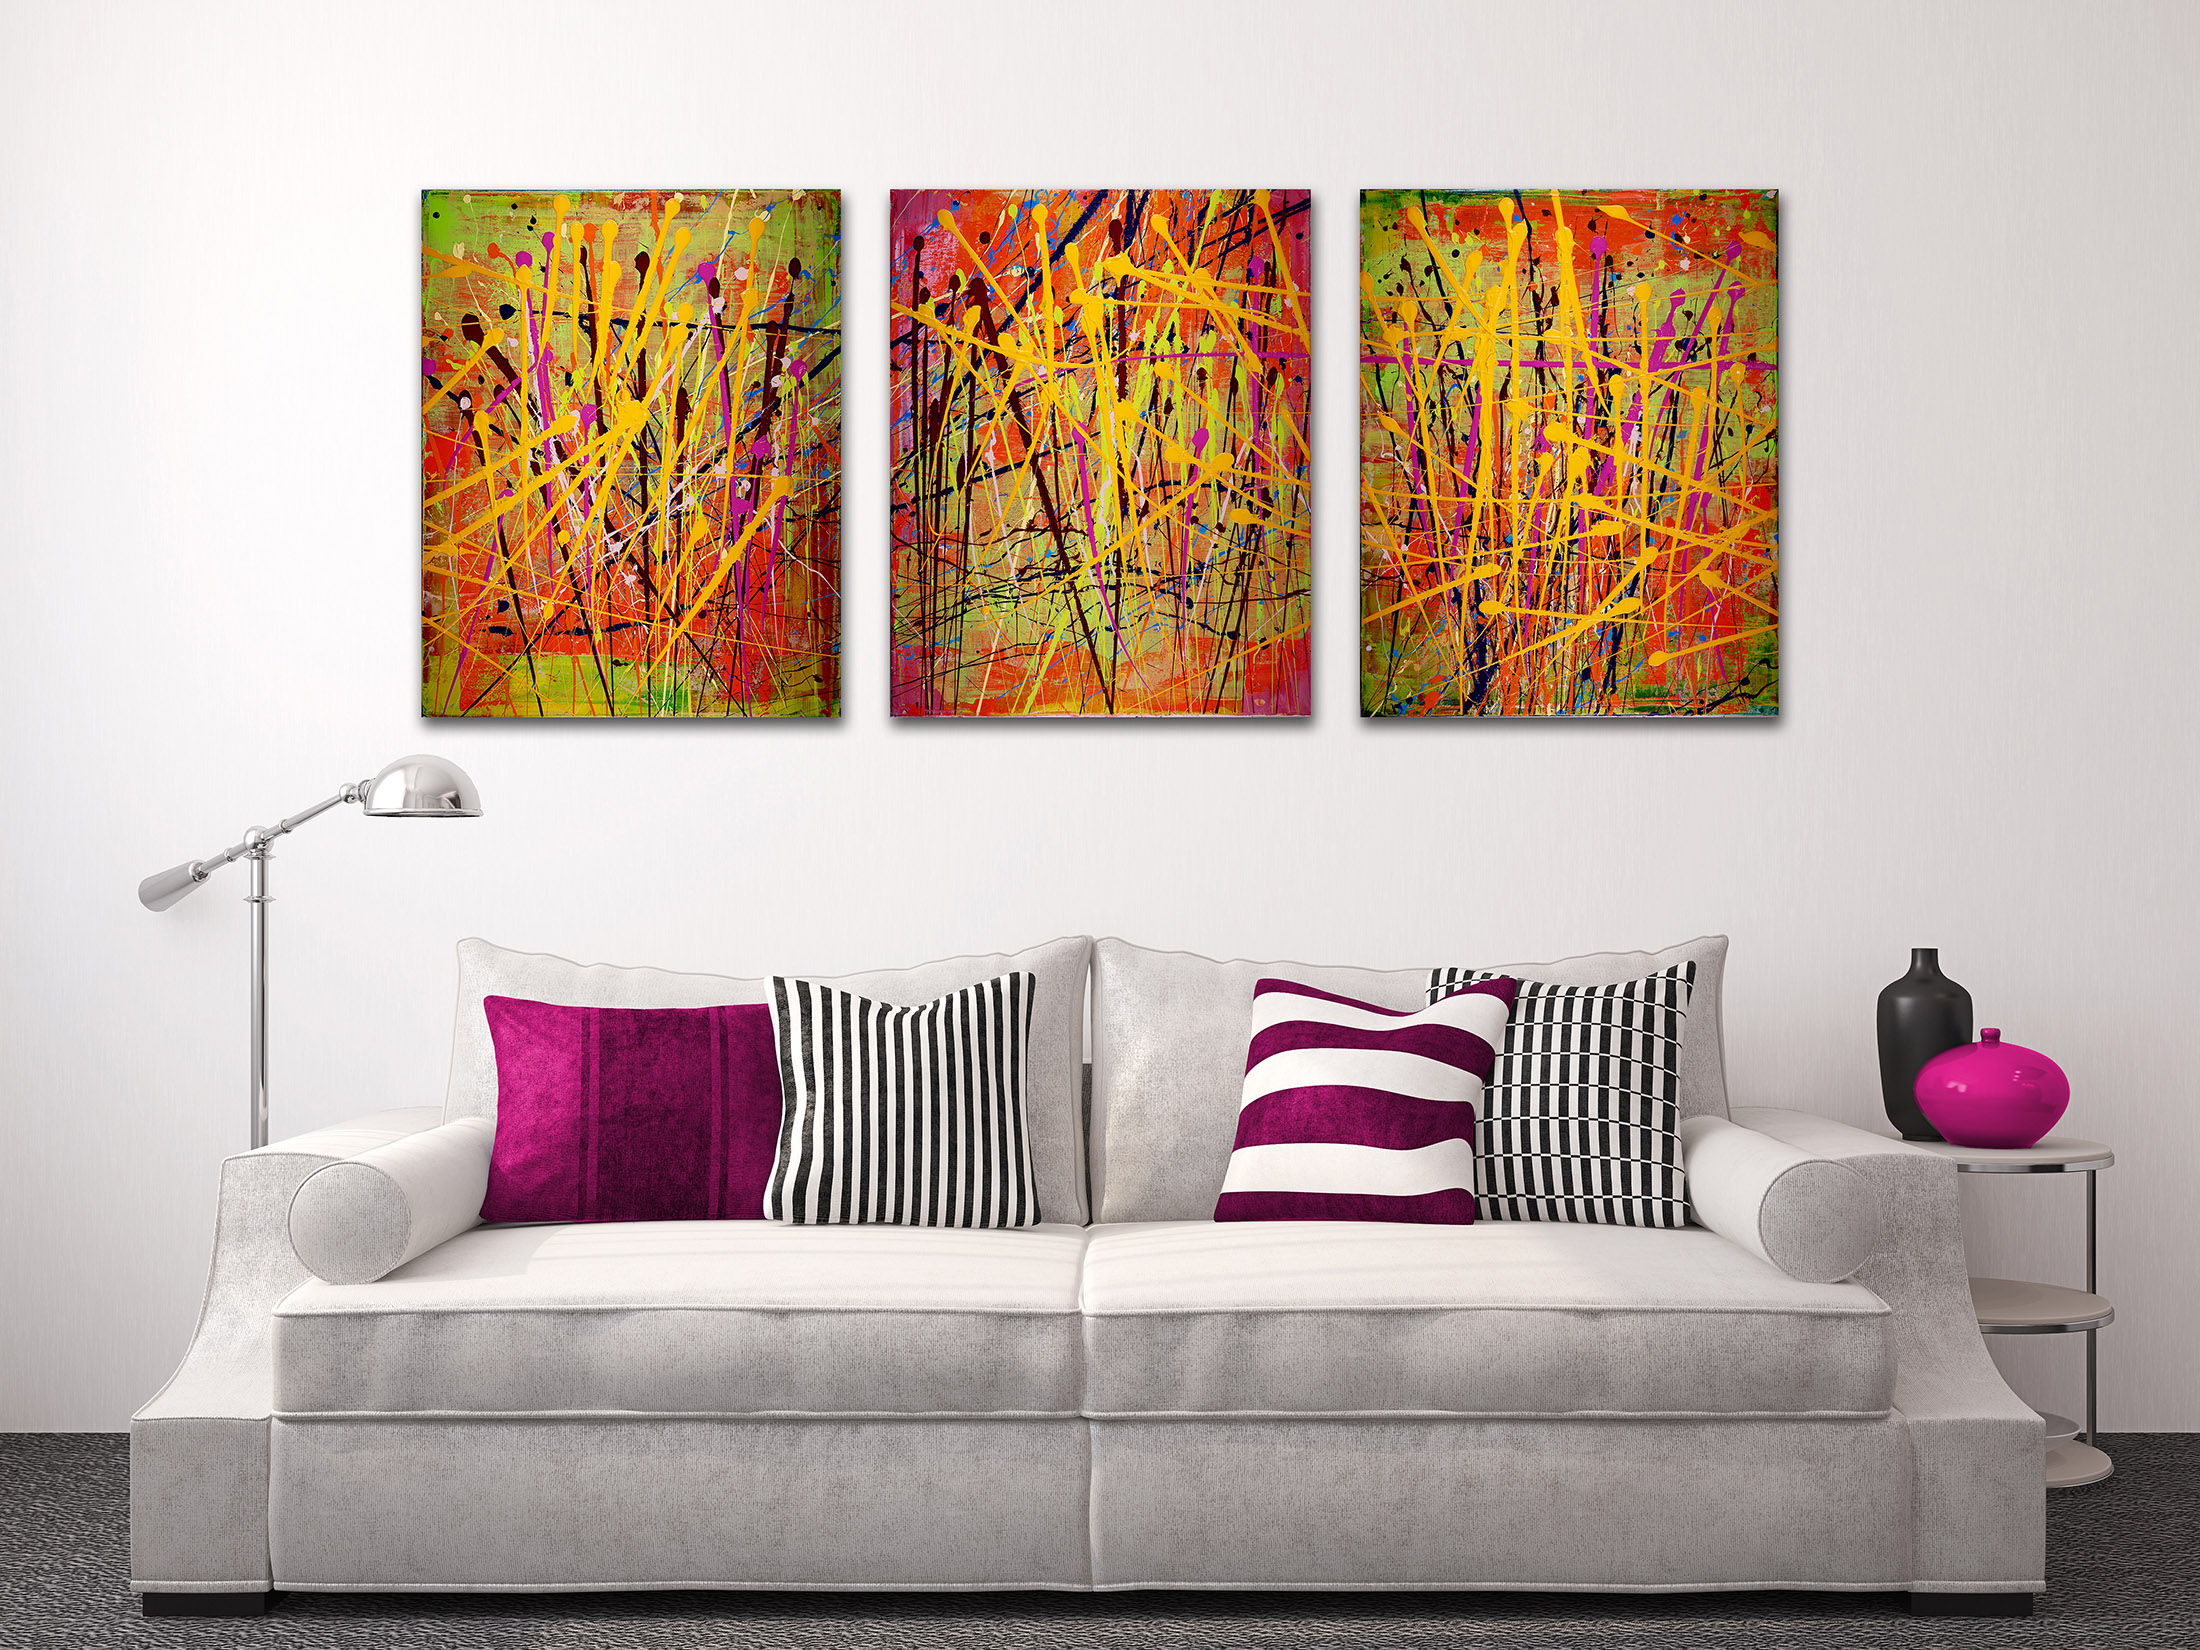 Interrupted abstract landscape ll by abstract artist Nestor Toro SOLD